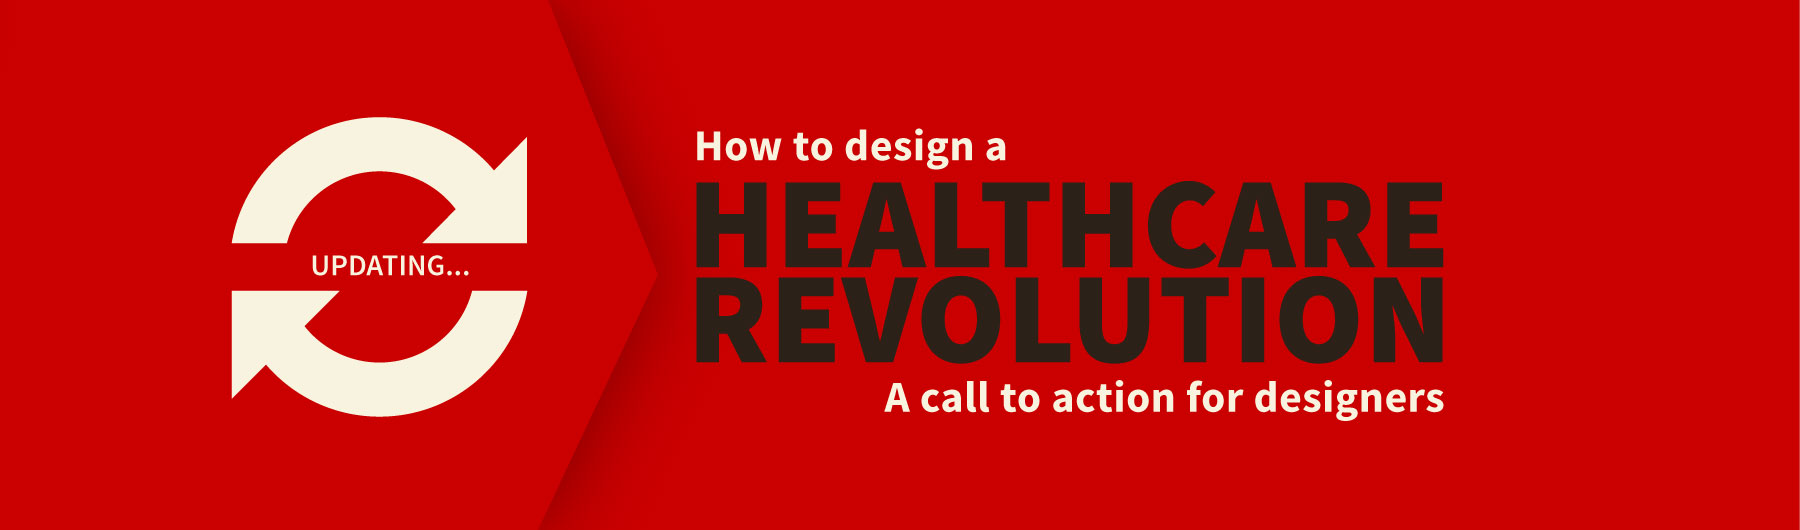 How to design a Healthcare Revolution